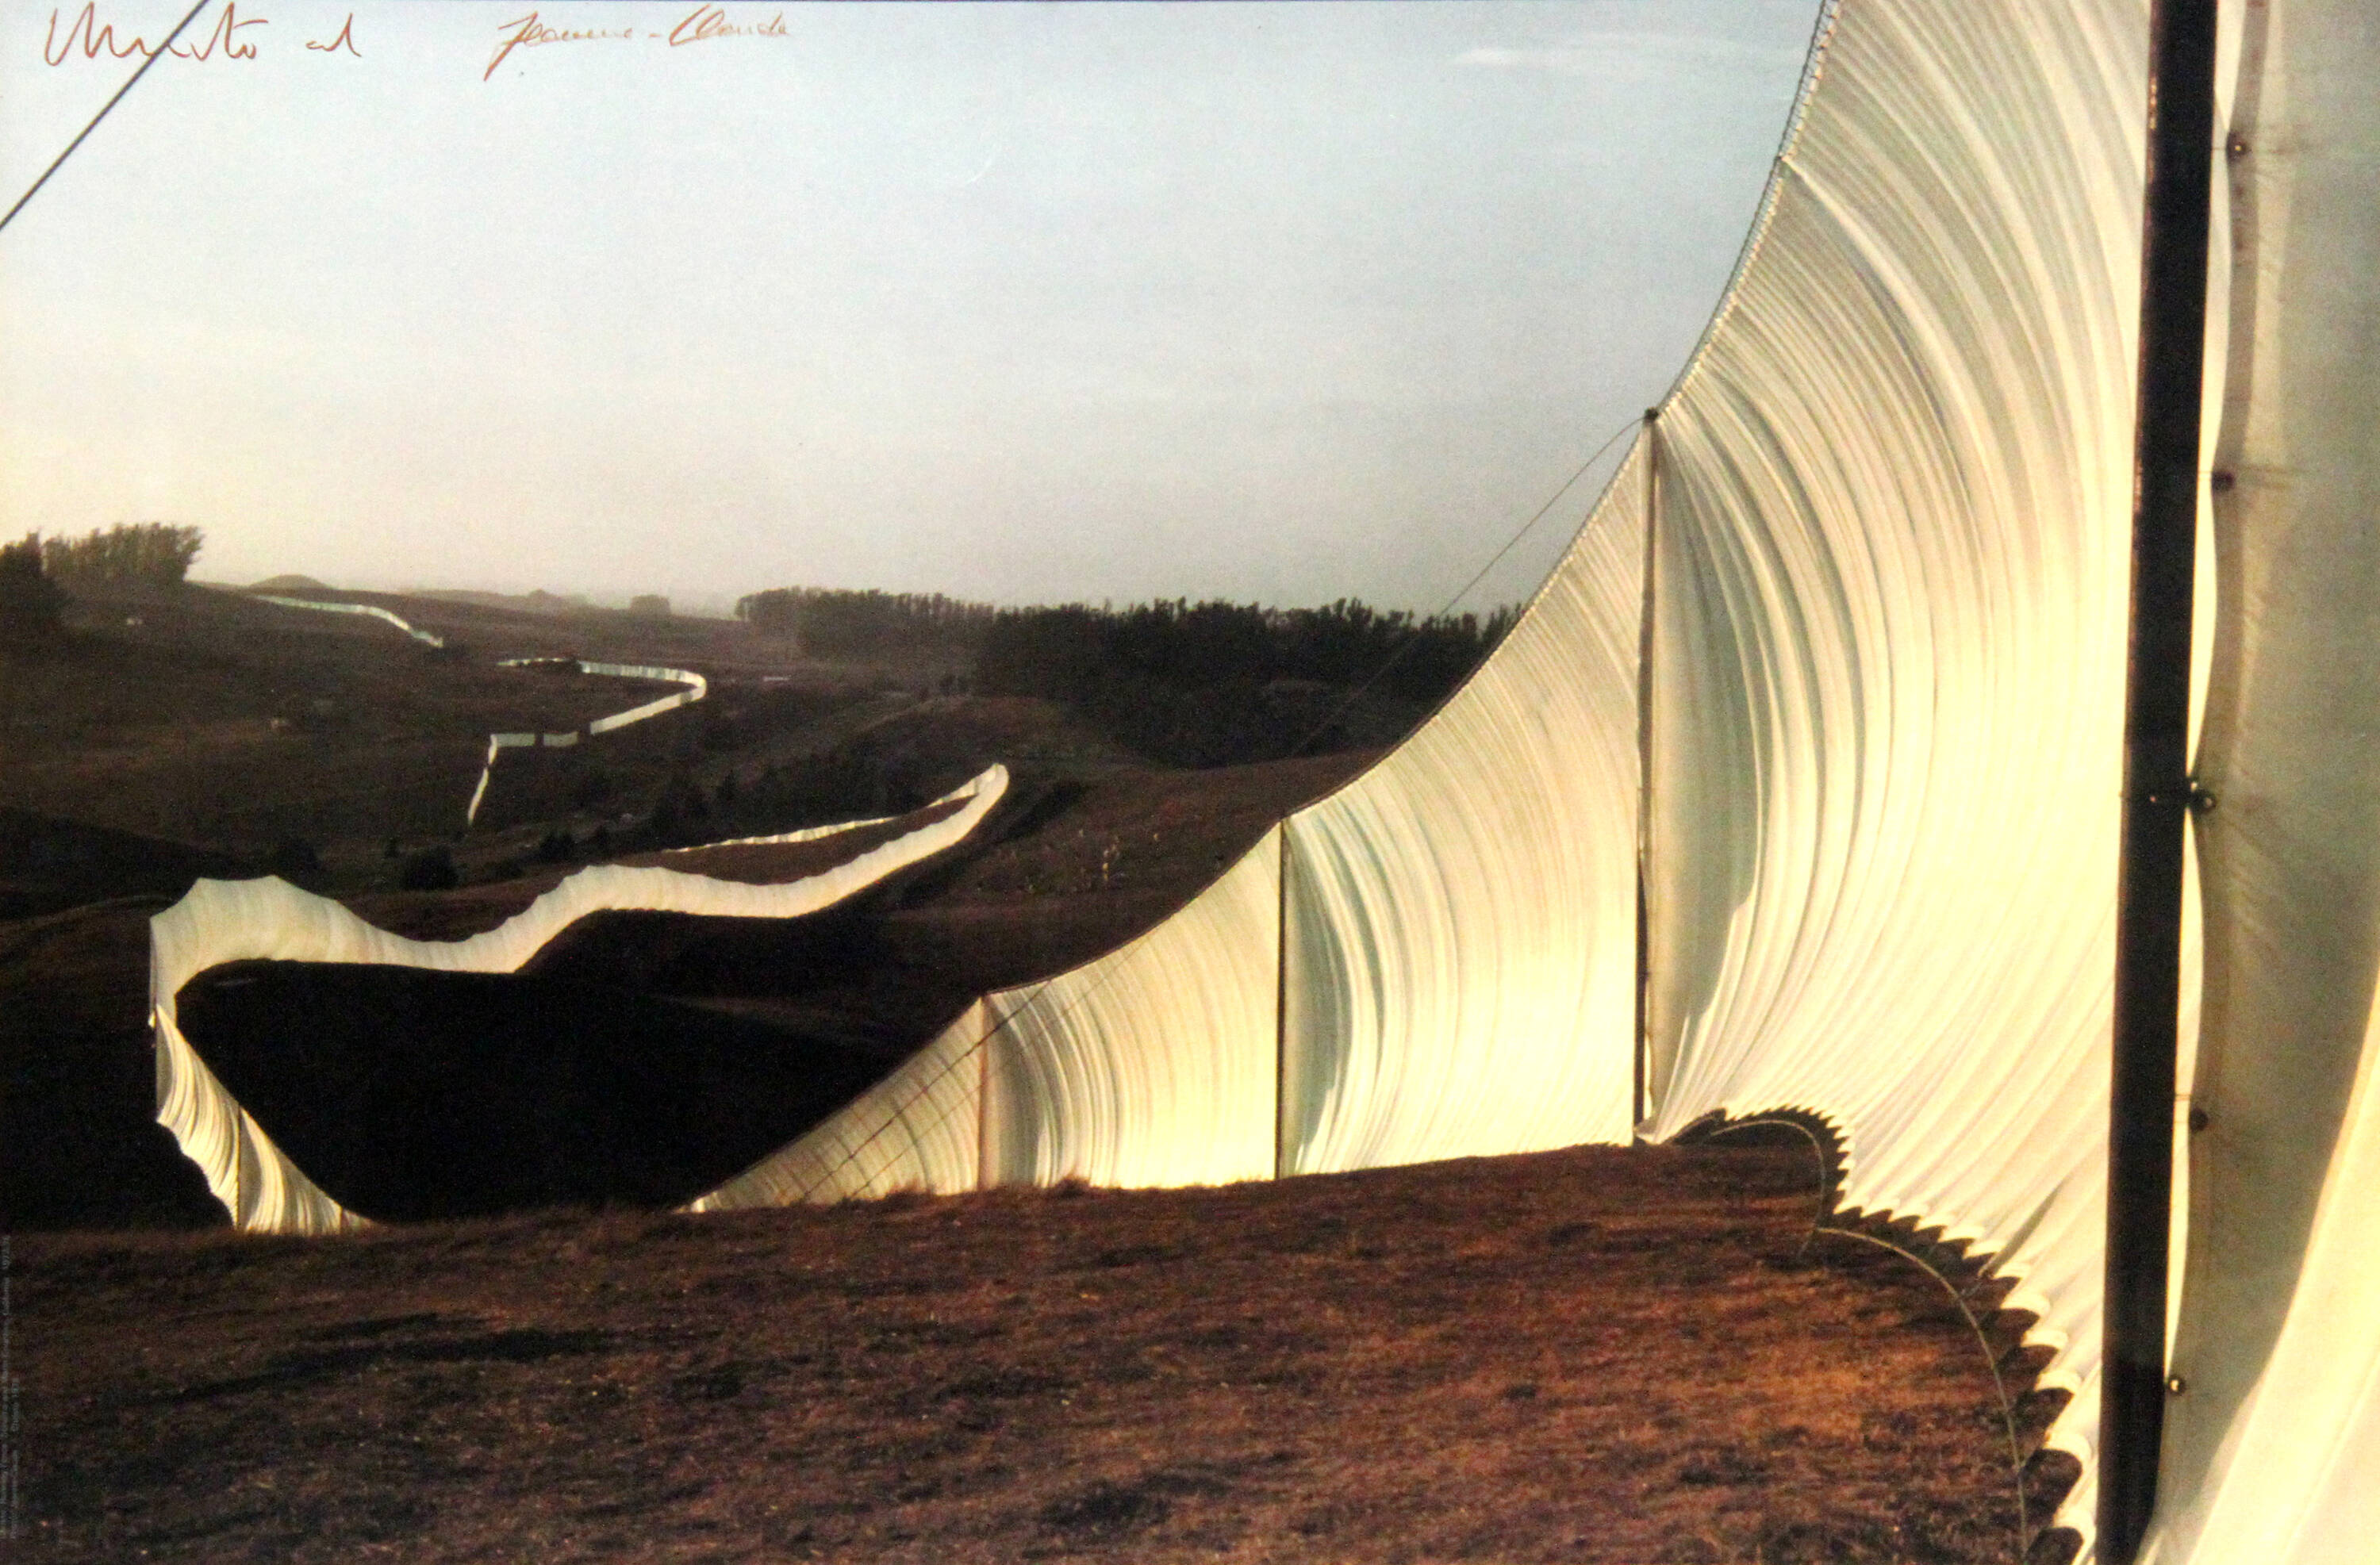 CHRISTO ET JEAN CLAUDE - 'Running fence - Sonoma and Marin Counties - California' 1976